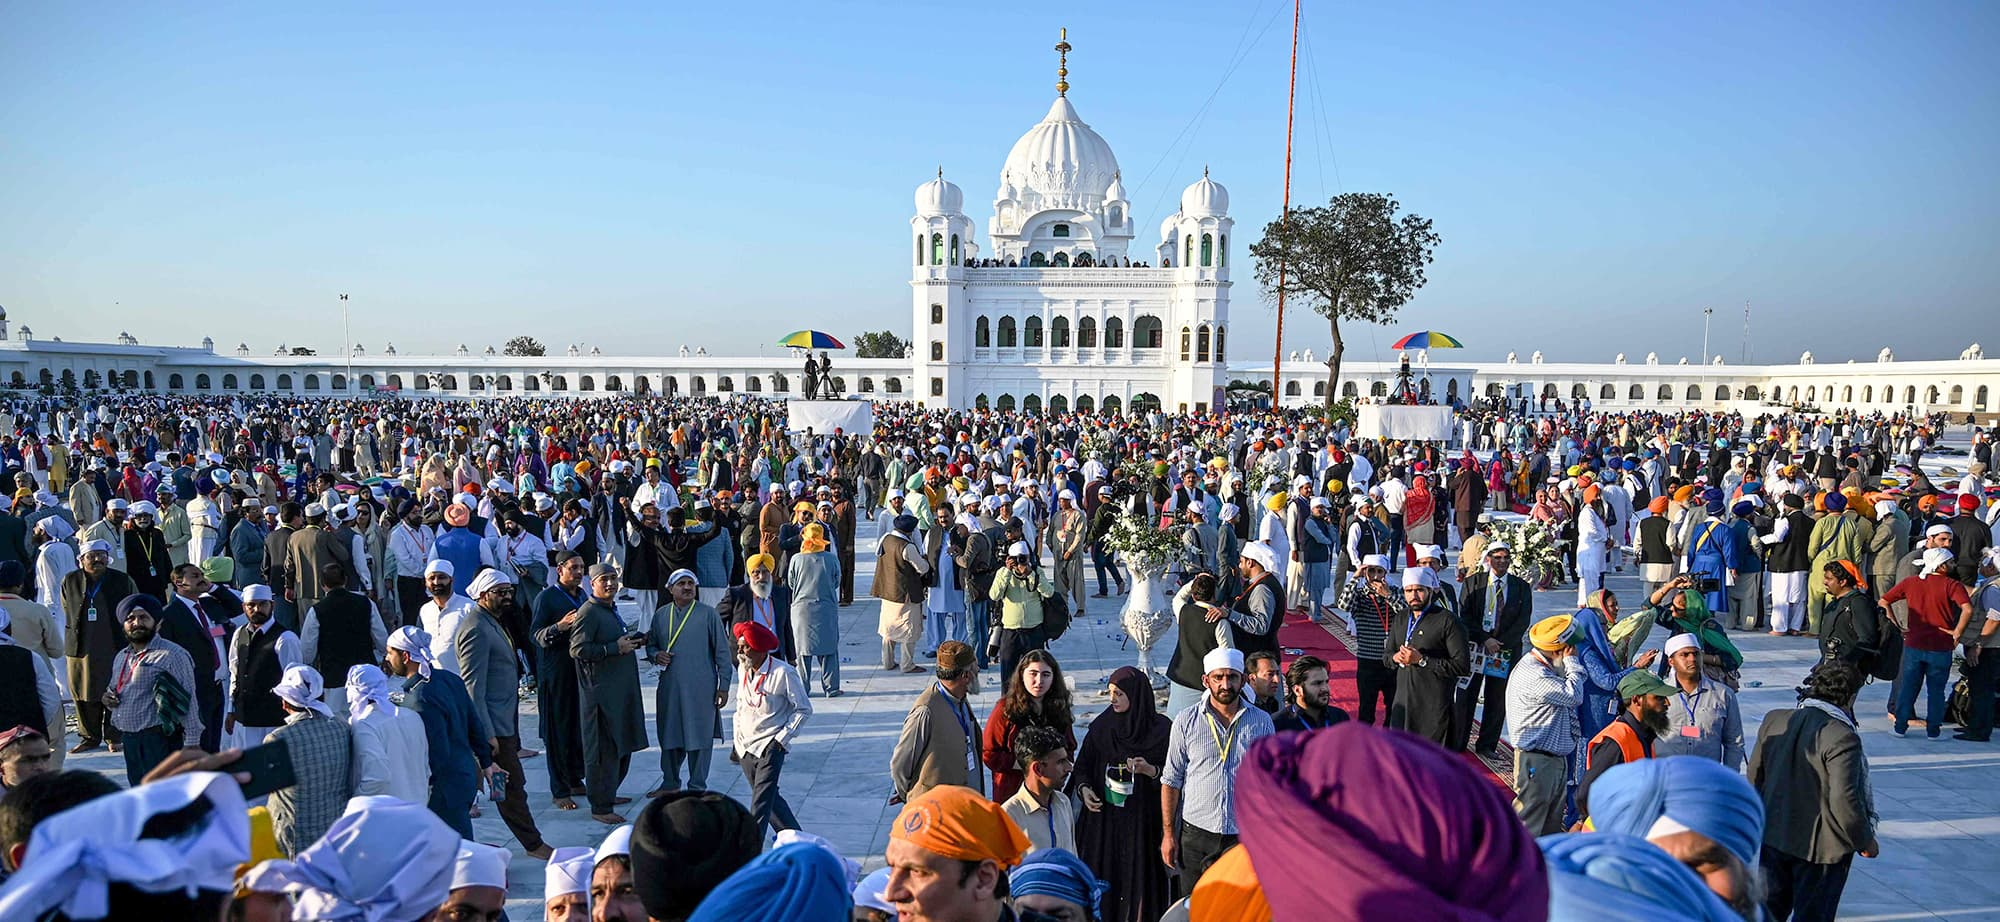 Sikh pilgrims visit the Shrine of Baba Guru Nanak Dev at Gurdwara Darbar Sahib in Kartarpur, near the Indian border, on November 9, 2019. - Hundreds of Indian Sikhs made a historic pilgrimage to Pakistan on November 9, crossing through a white gate to reach one of their religion's holiest sites, after a landmark deal between the two countries separated by the 1947 partition of the subcontinent. (Photo by AAMIR QURESHI / AFP) — AFP or licensors